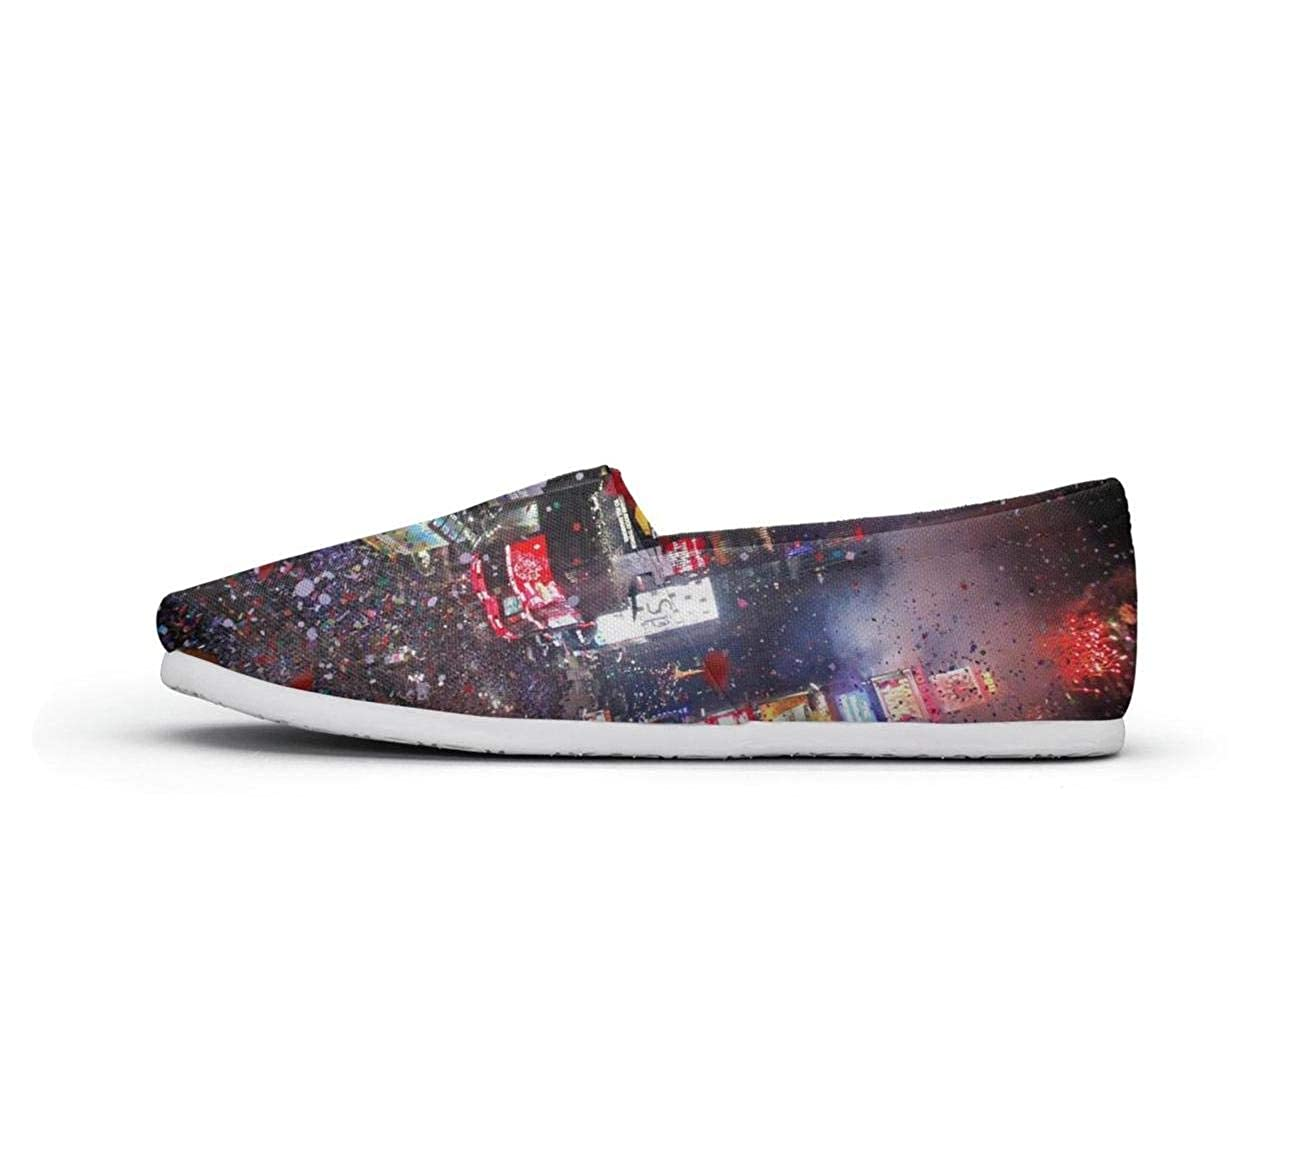 nkfbx New York City Times Square Travel Fashion Slip-On Sneakers for Girls Walking